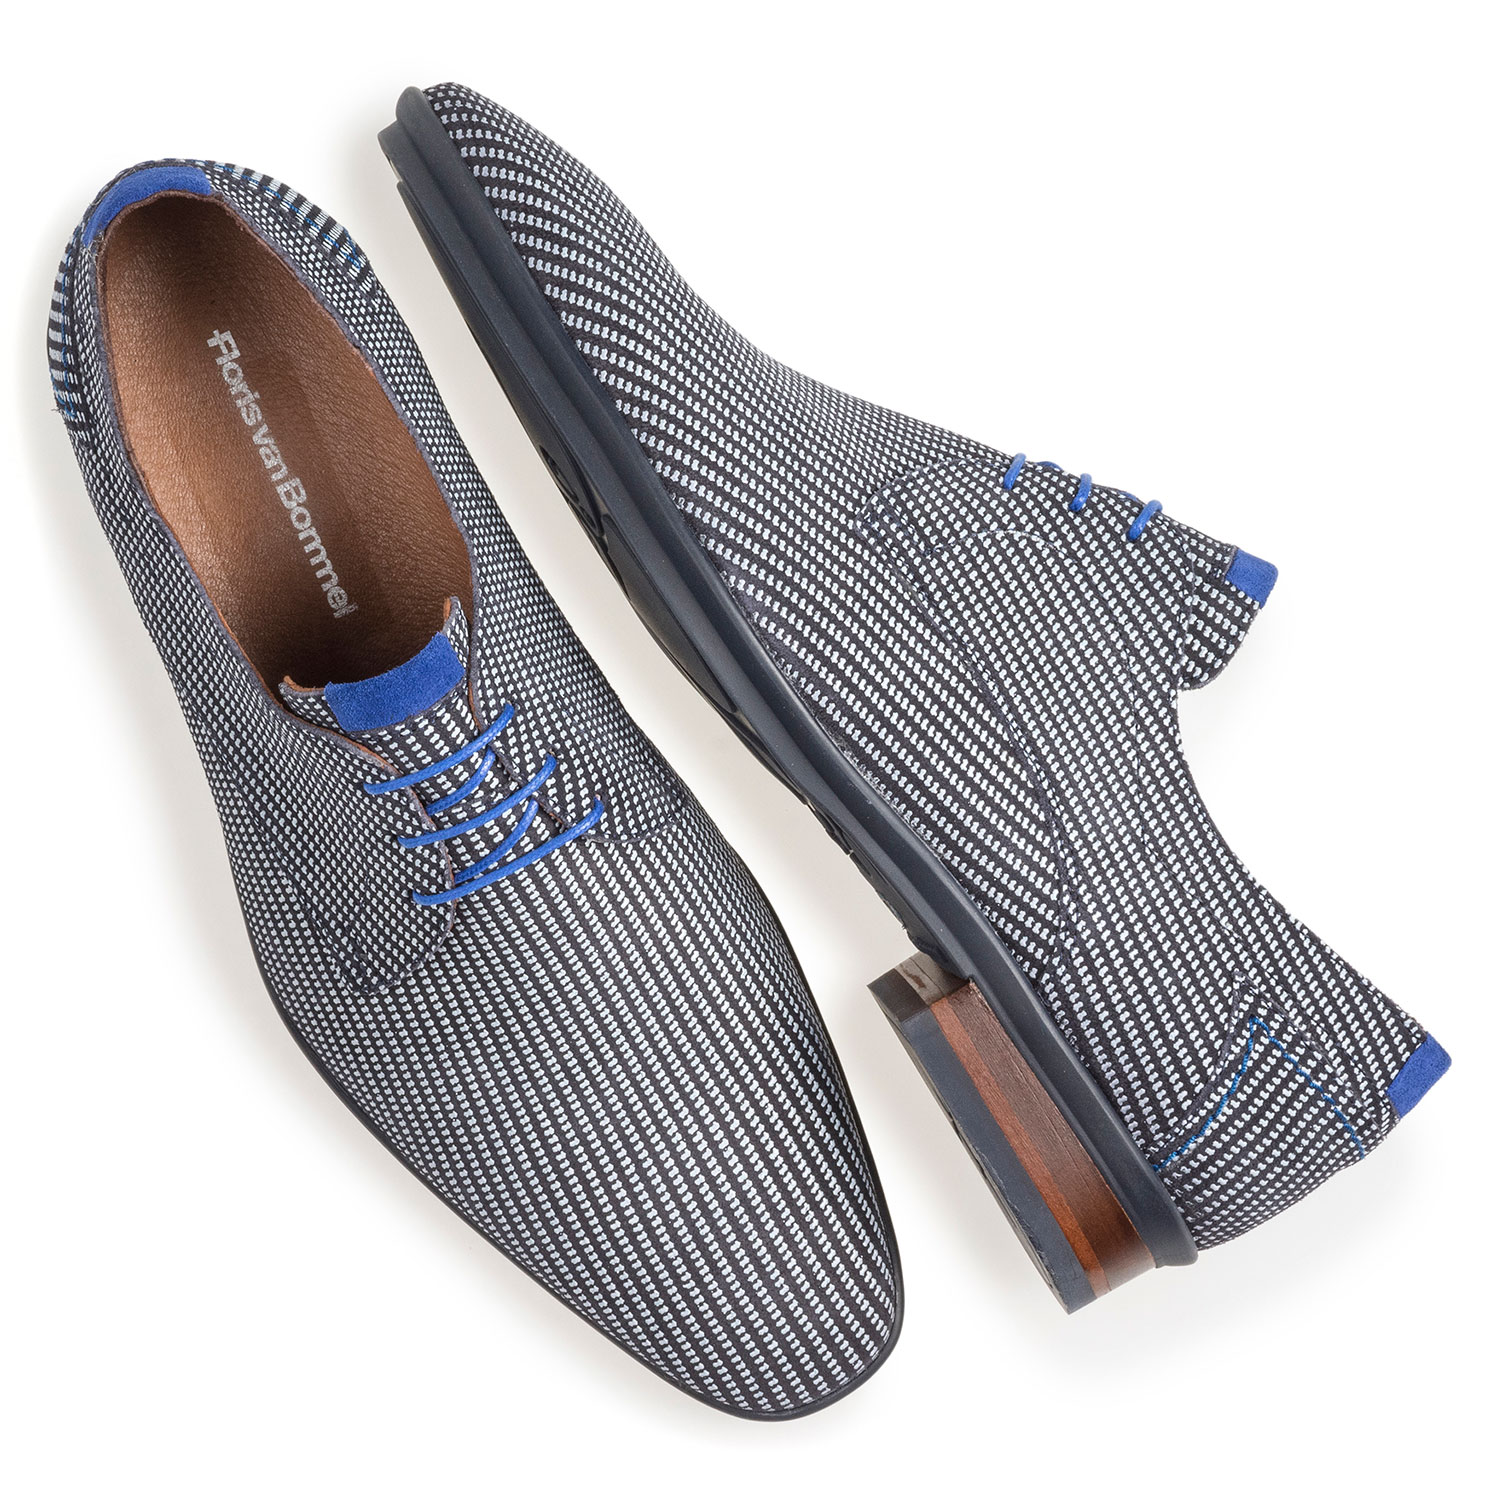 18441/22 - Blue suede leather lace shoe with white print